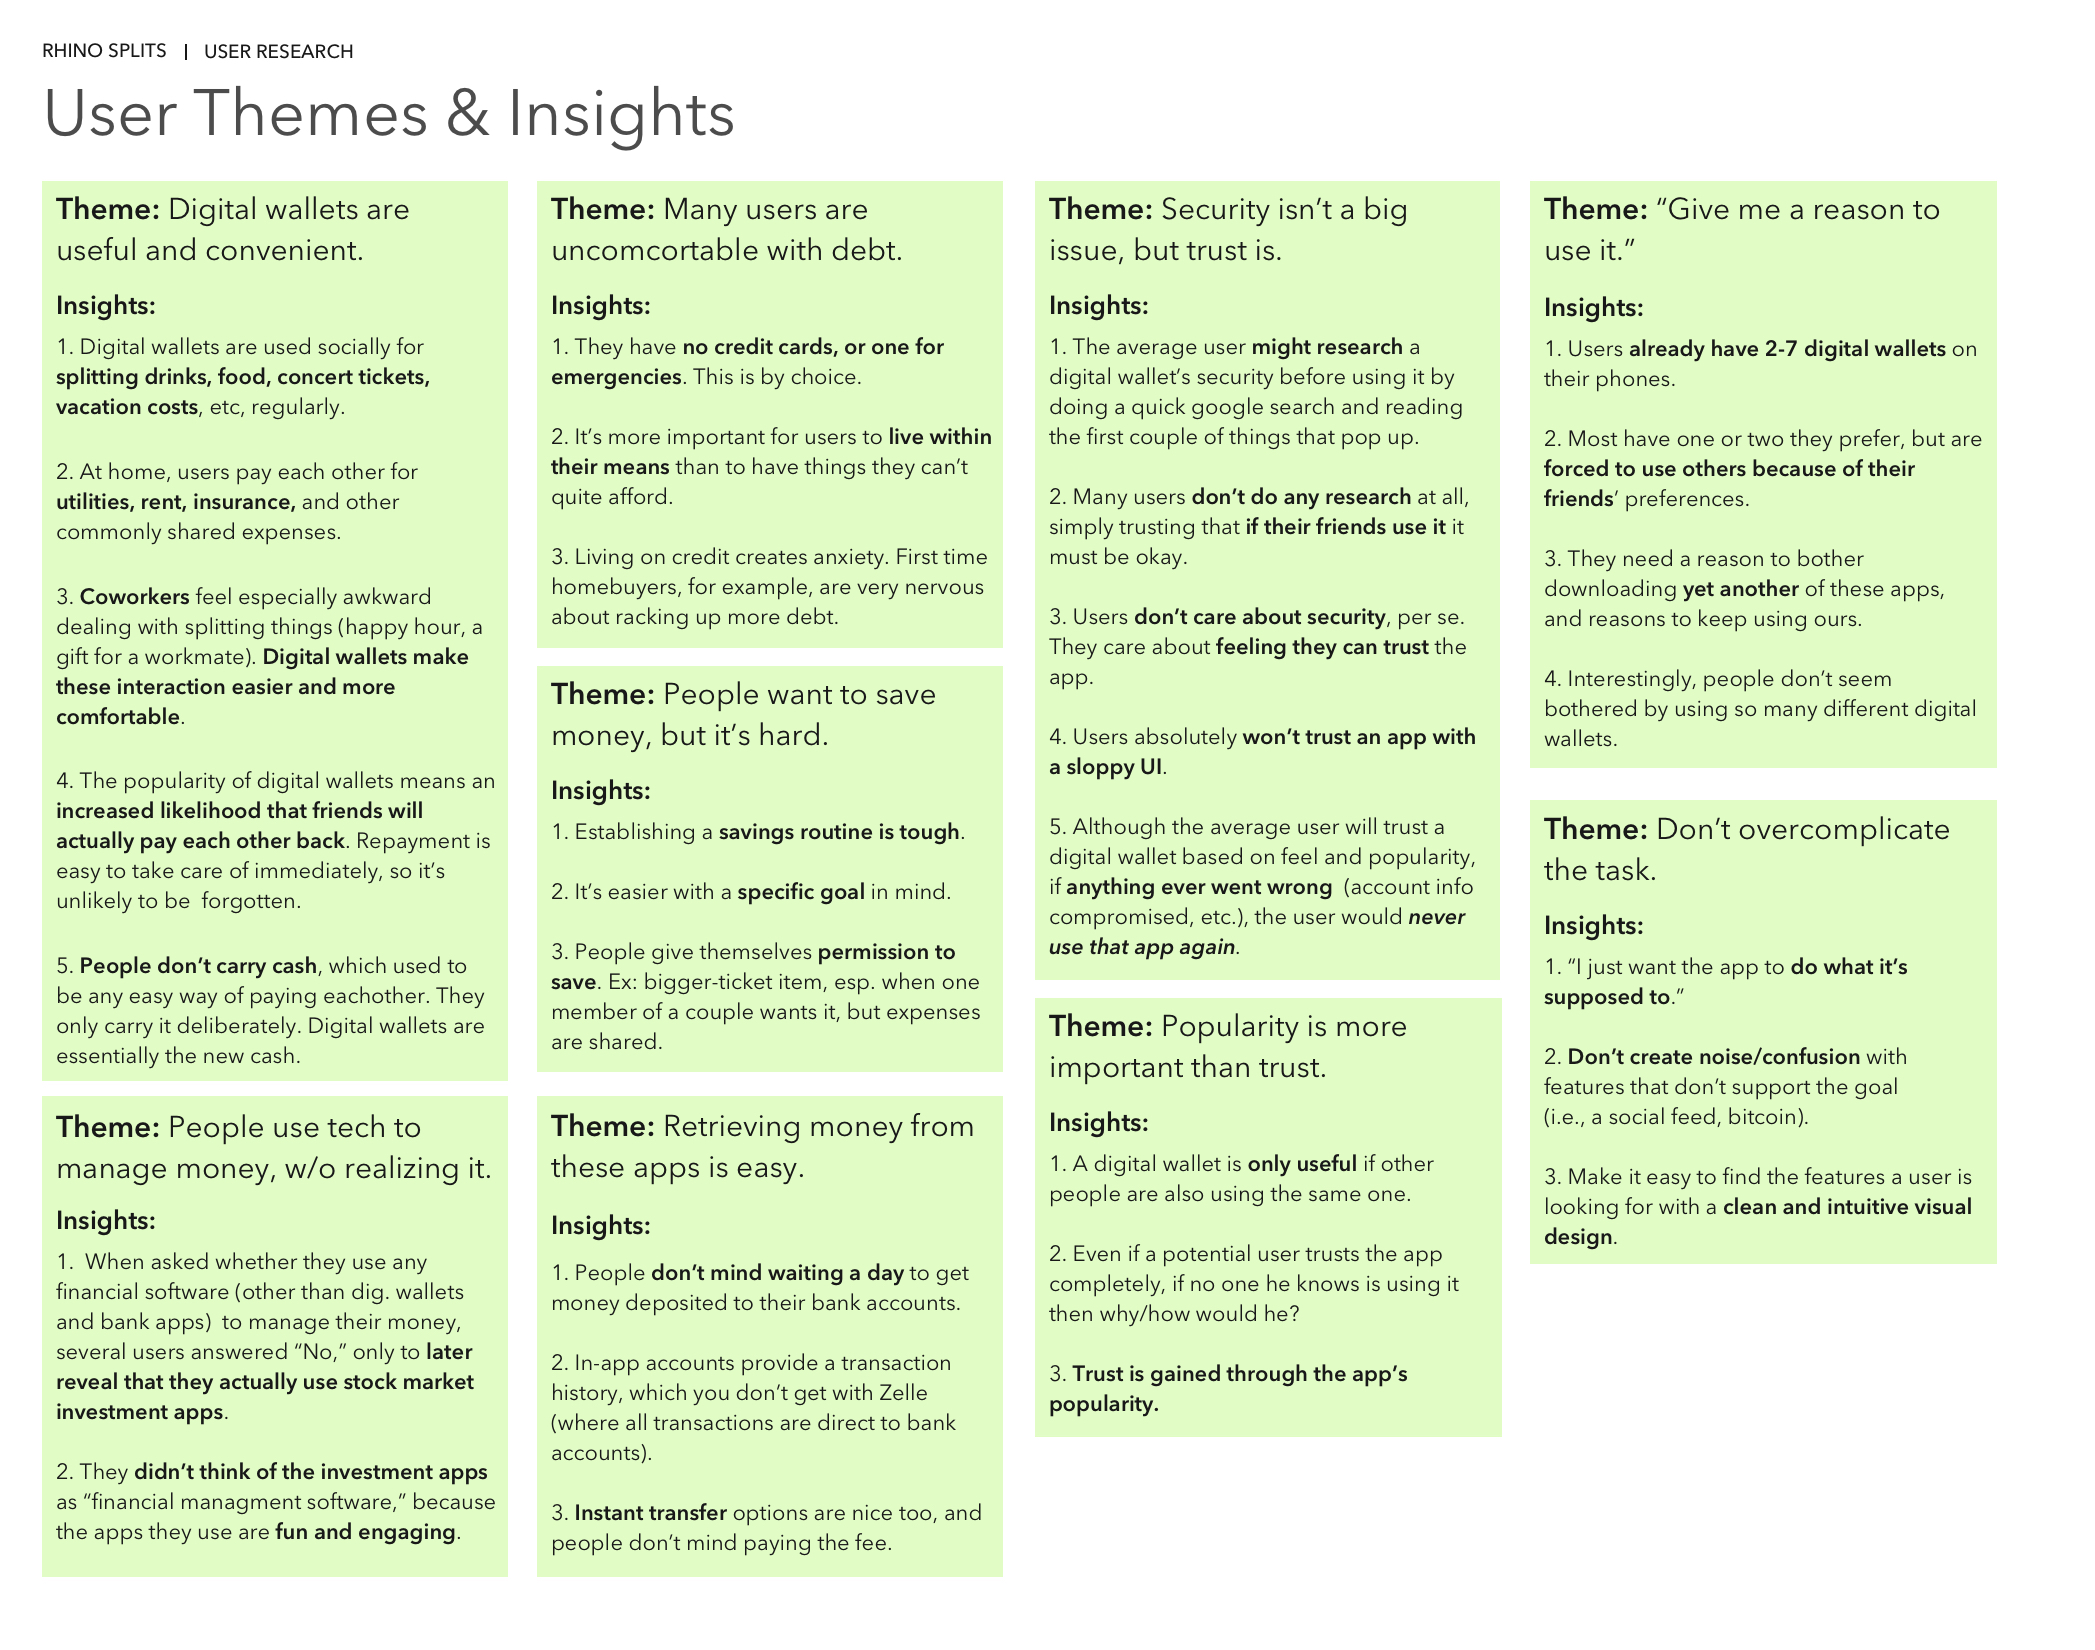 Above: Results of analyzing user research findings, distilled into key themes and insights